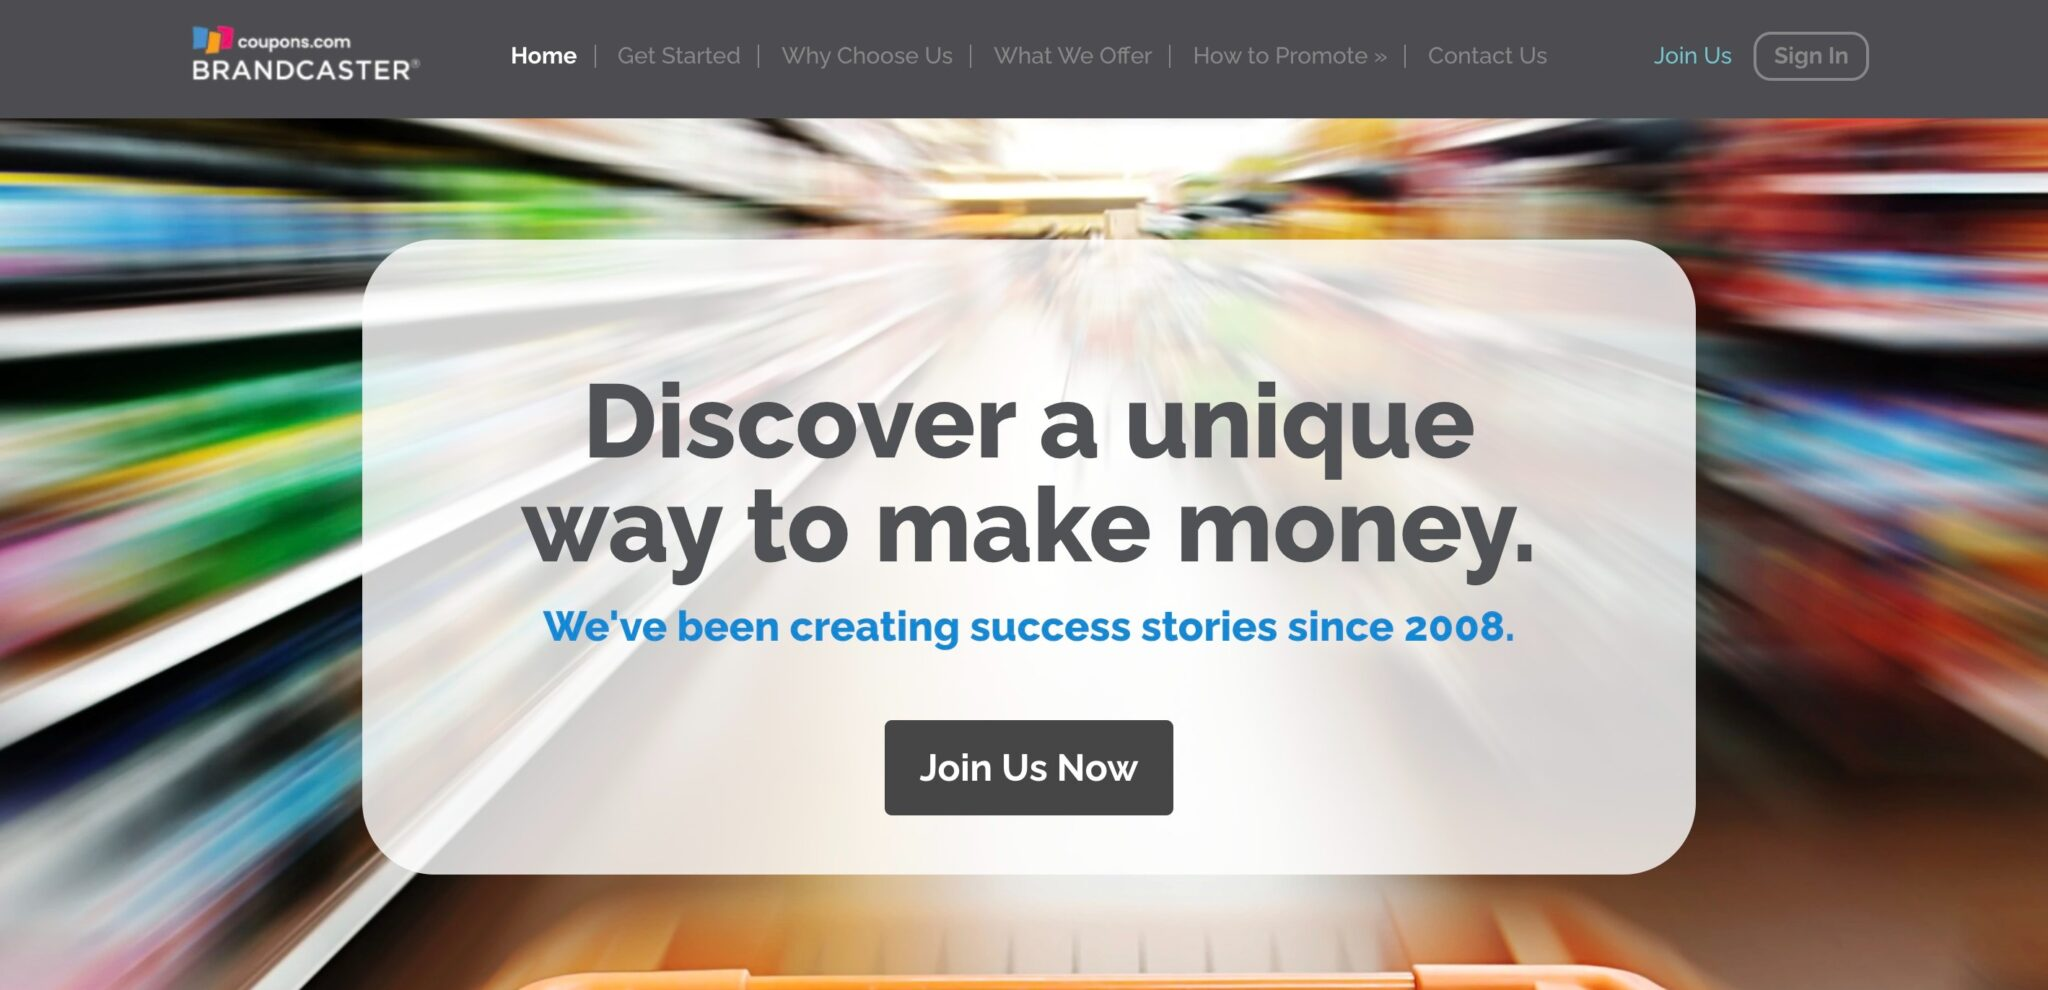 coupon affiliate network